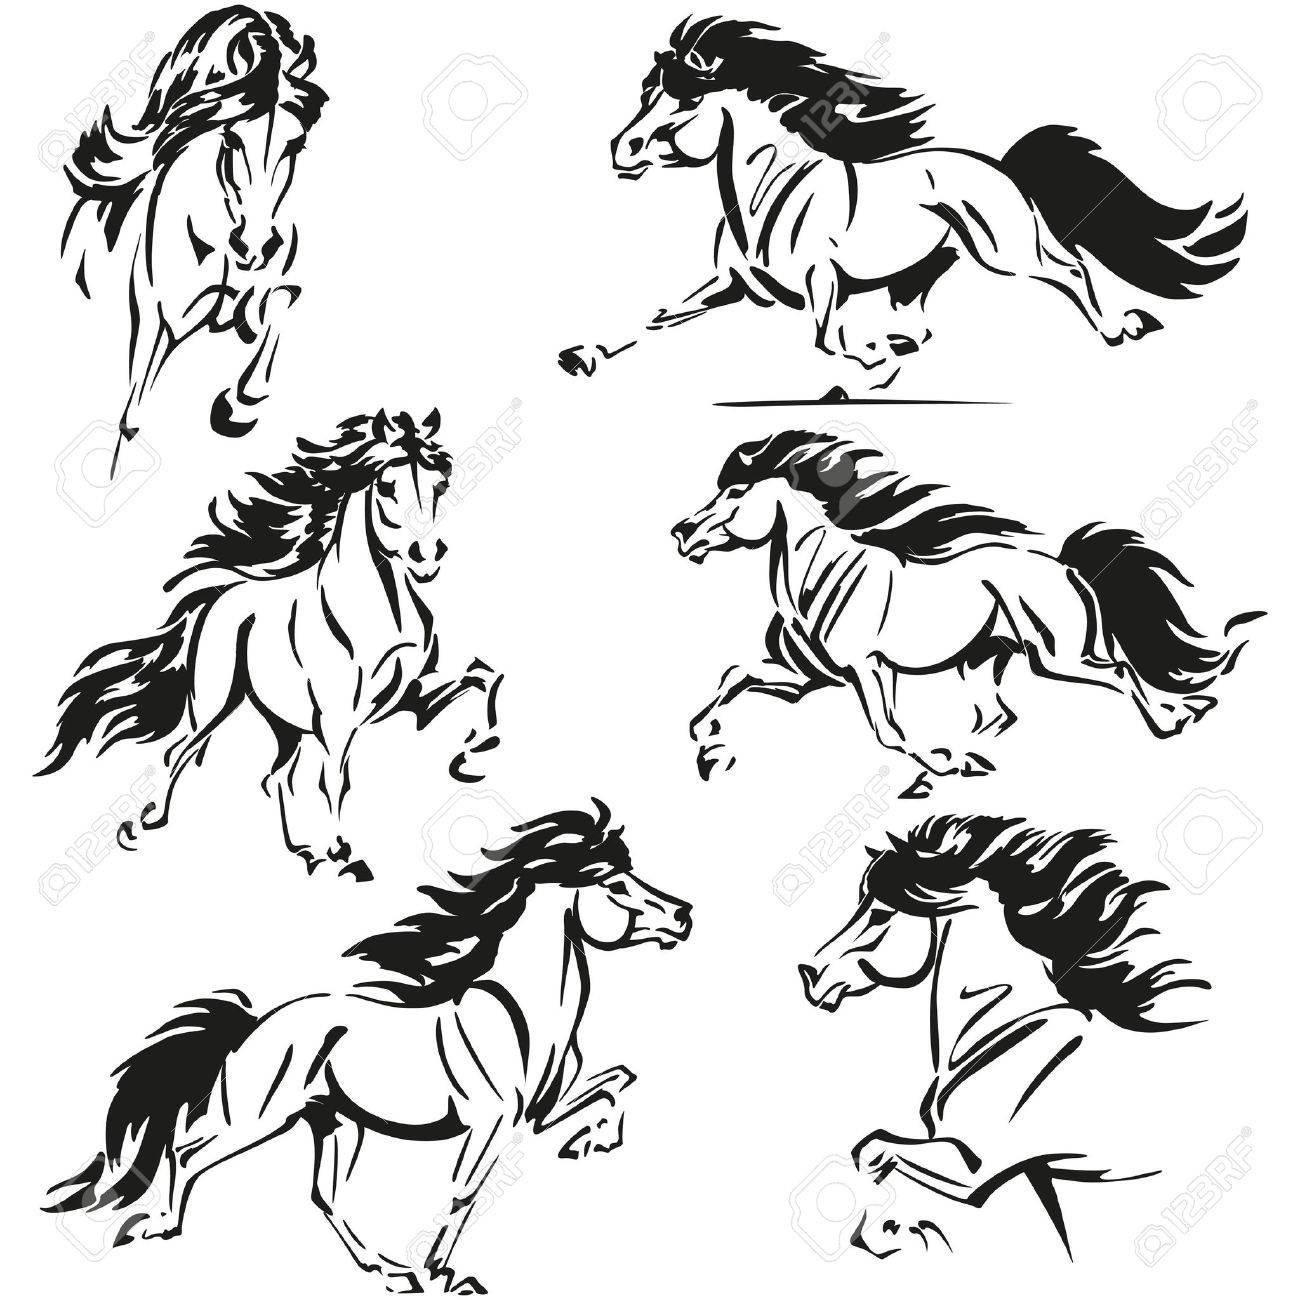 Icelandic Horse Themes Royalty Free Cliparts, Vectors, And Stock ...